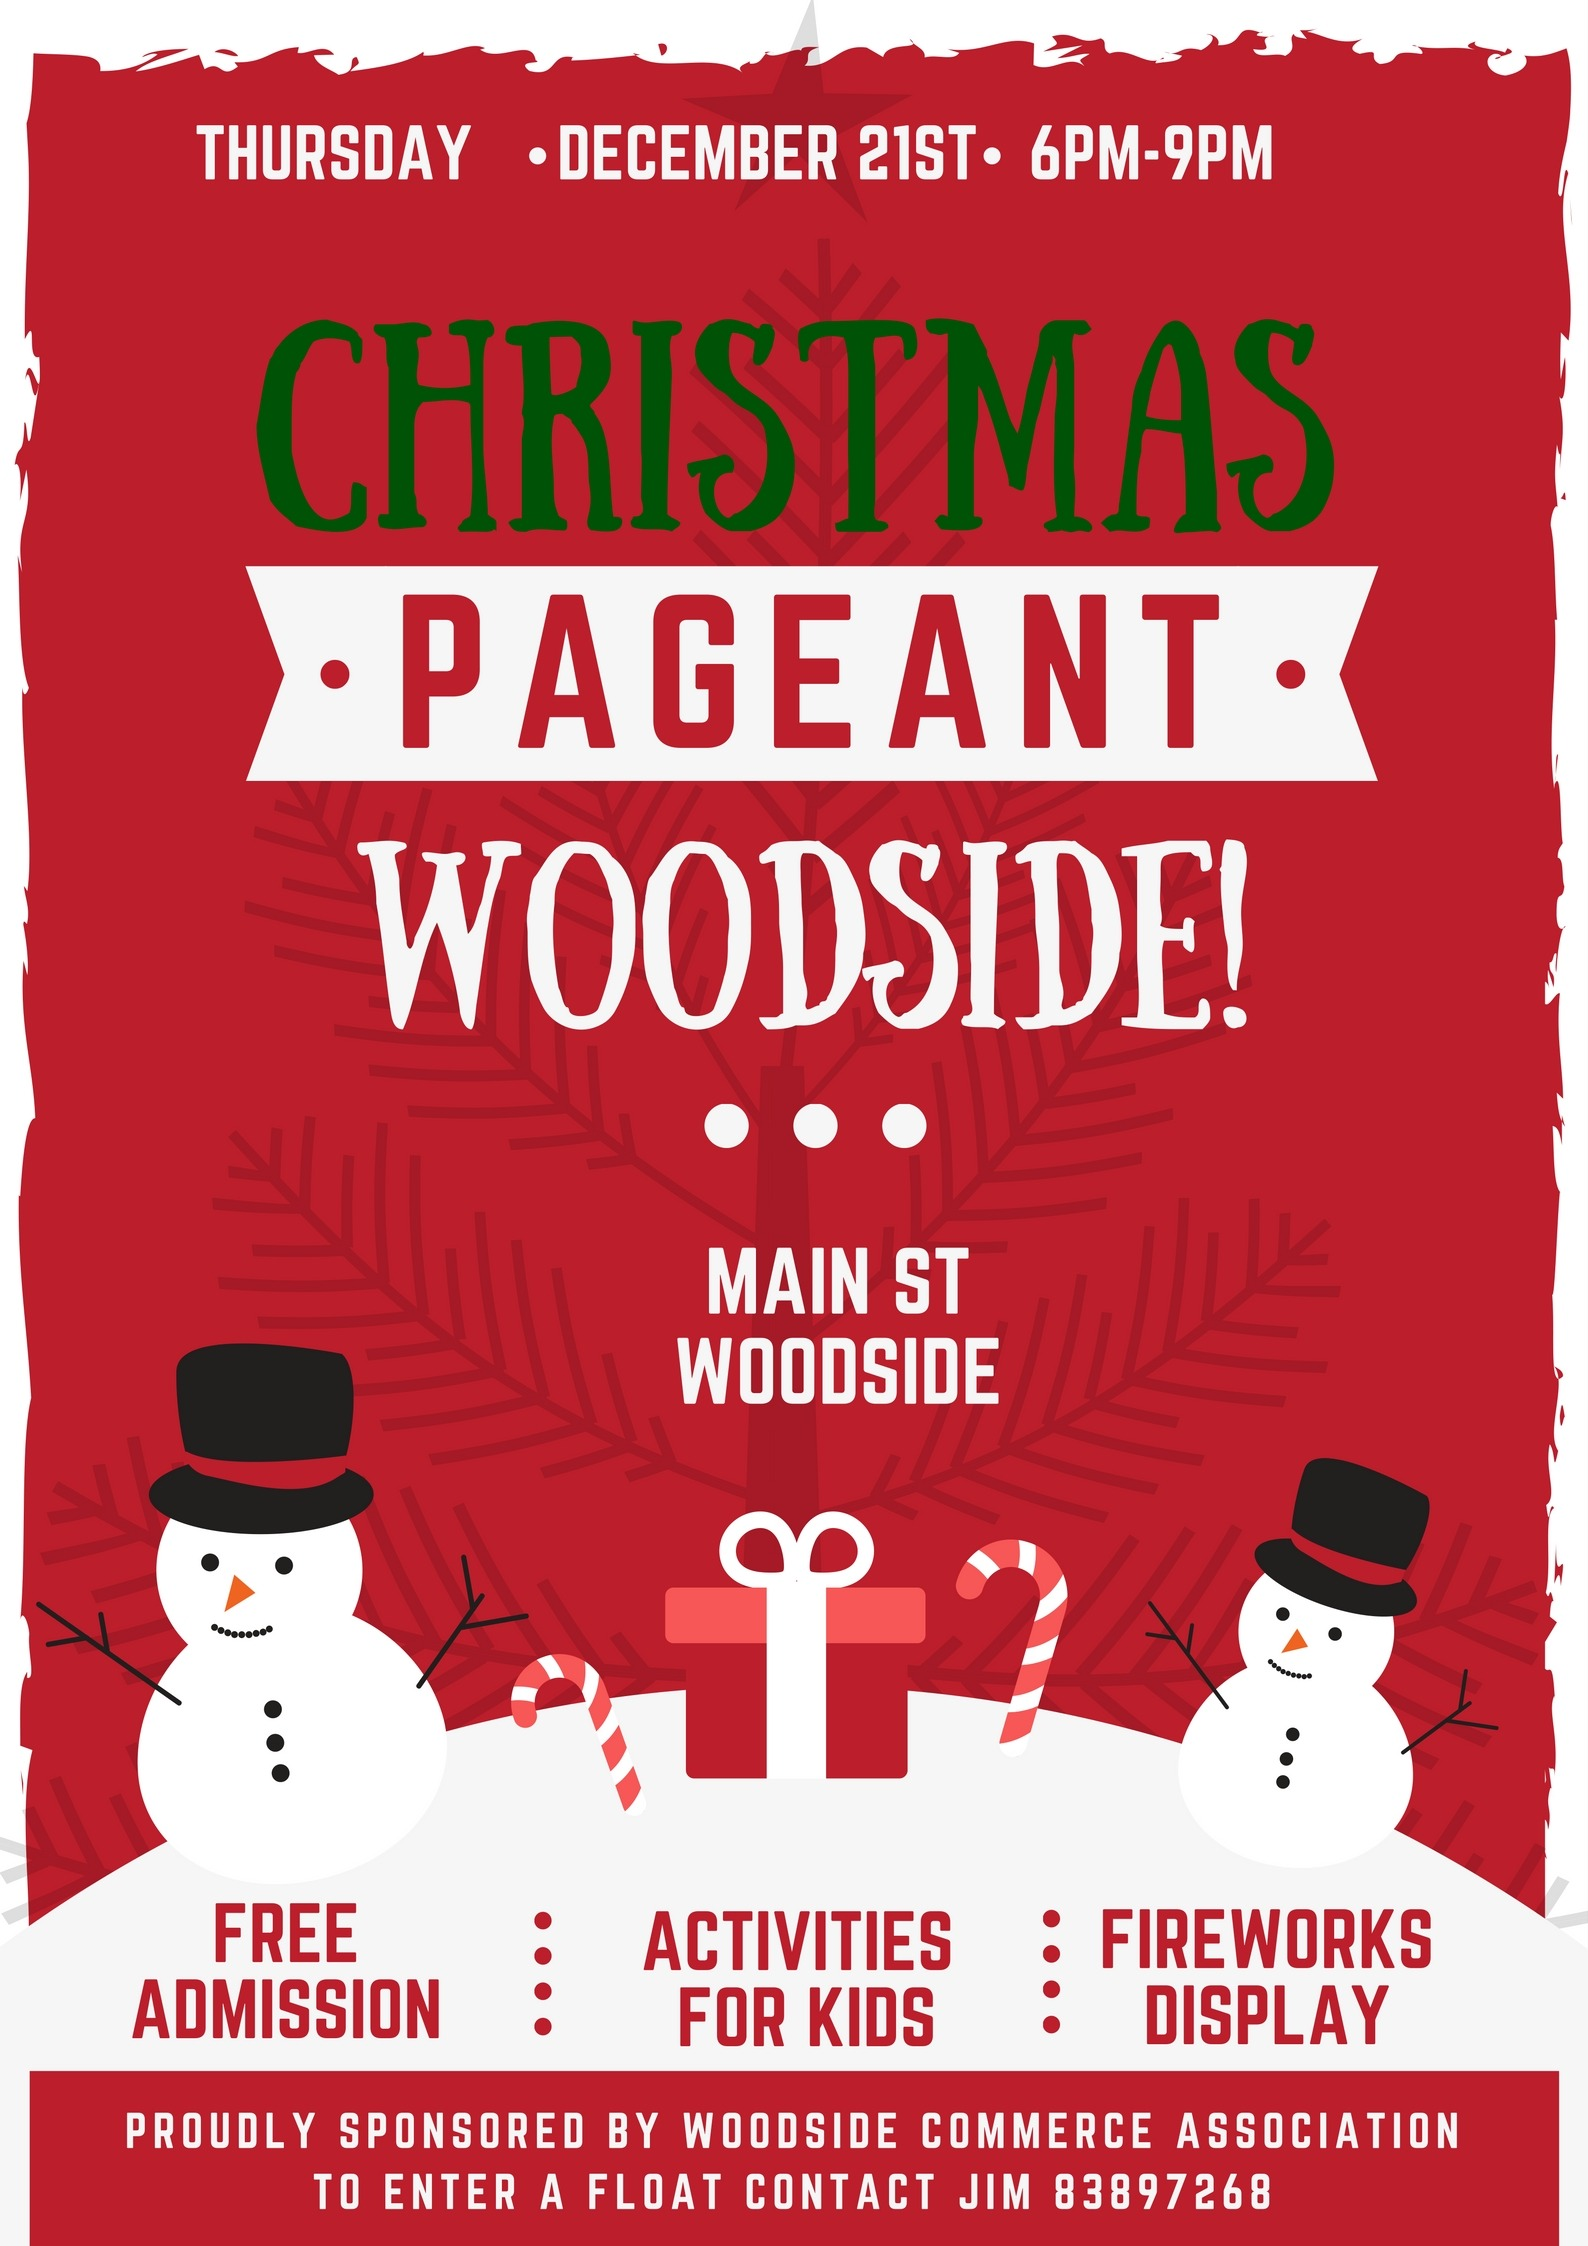 Woodside Christmas Parade and fireworks